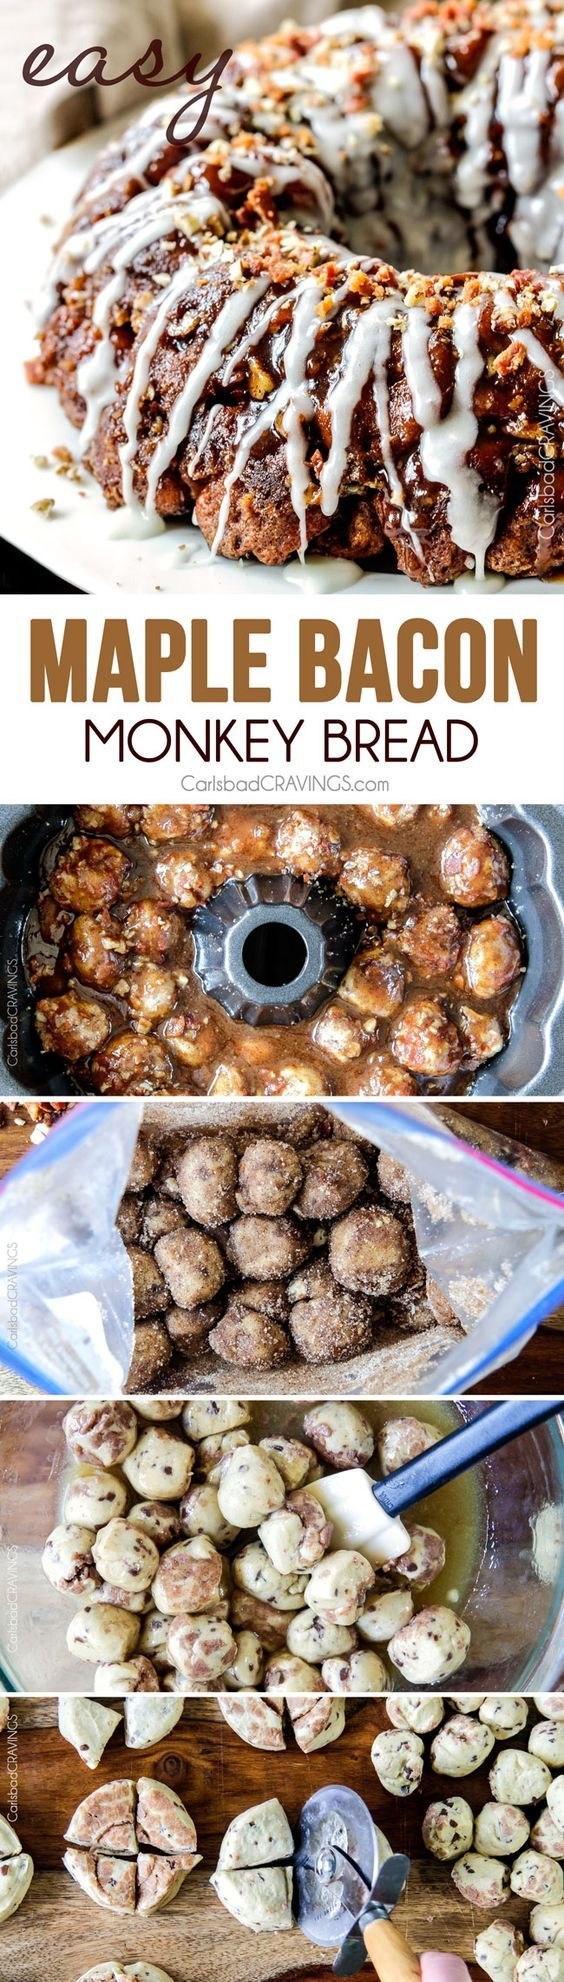 Maple Bacon Cinnamon Roll Monkey Bread made easy with refrigerated cinnamon rolls and made irresistible with maple crispy crumbled bacon pecans and a maple caramel topping. The perfect special occasion breakfast brunch or dessert!